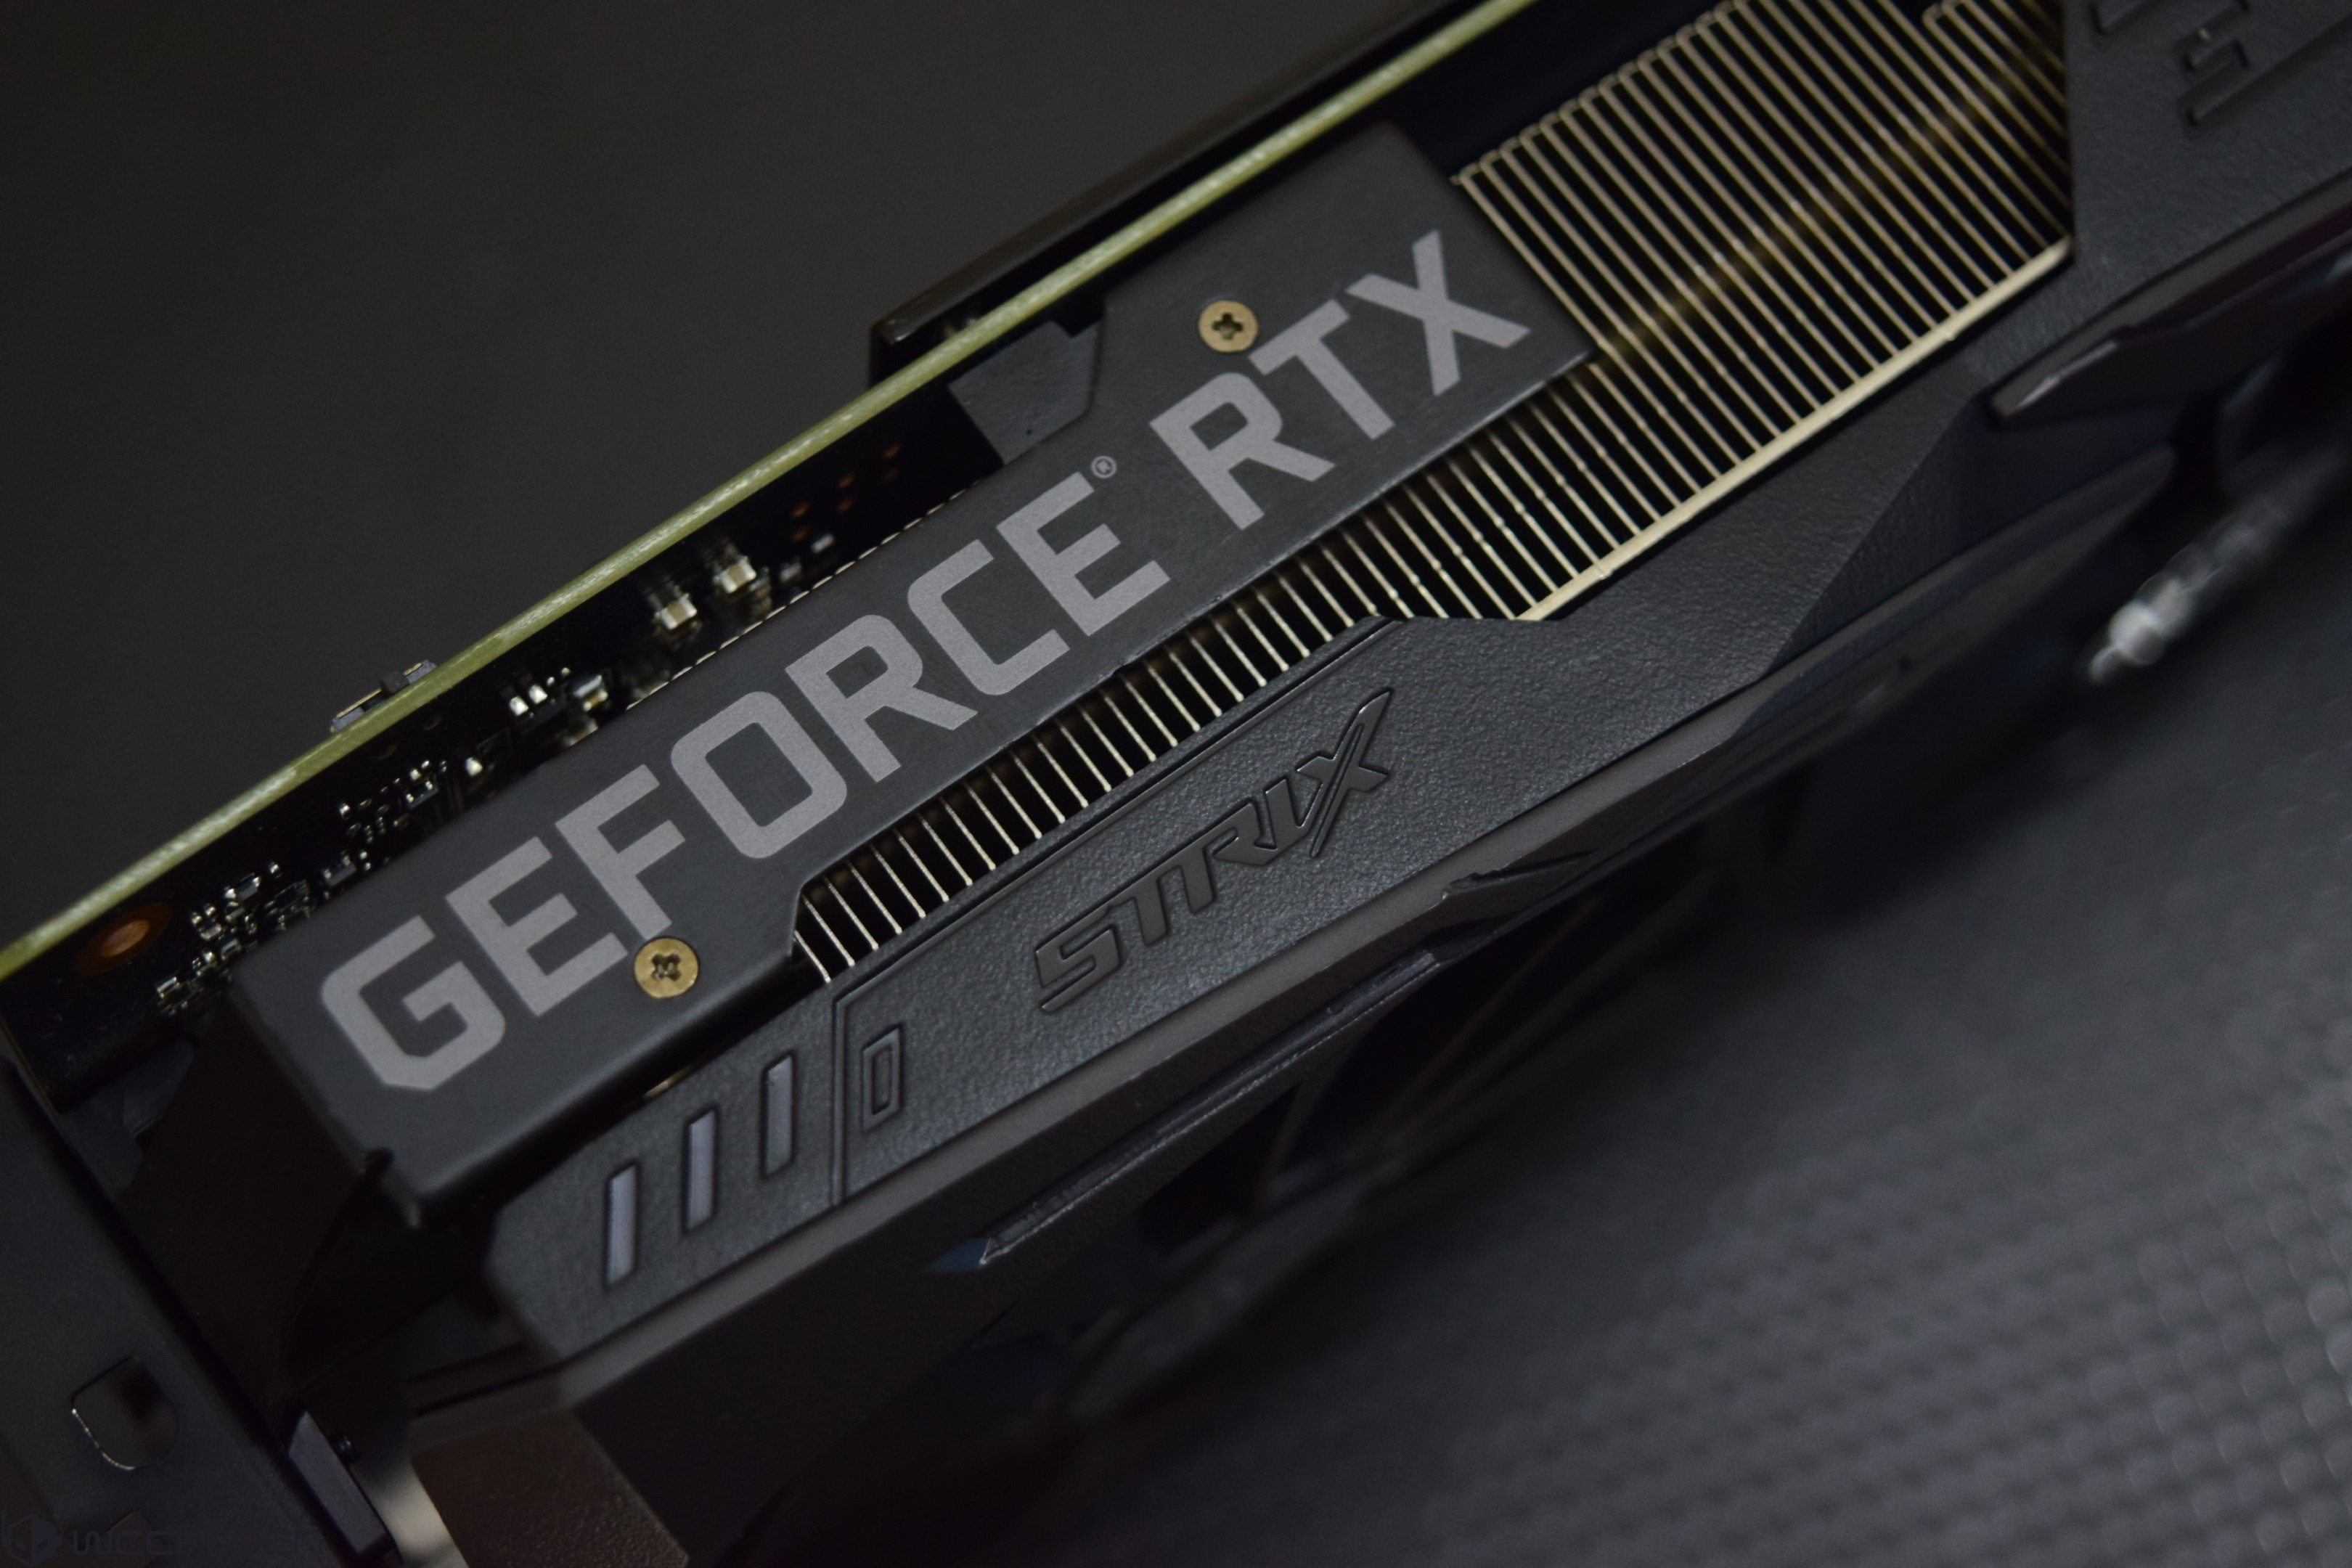 NVIDIA GeForce RTX 2070 Review Ft  ASUS ROG STRIX & MSI Armor